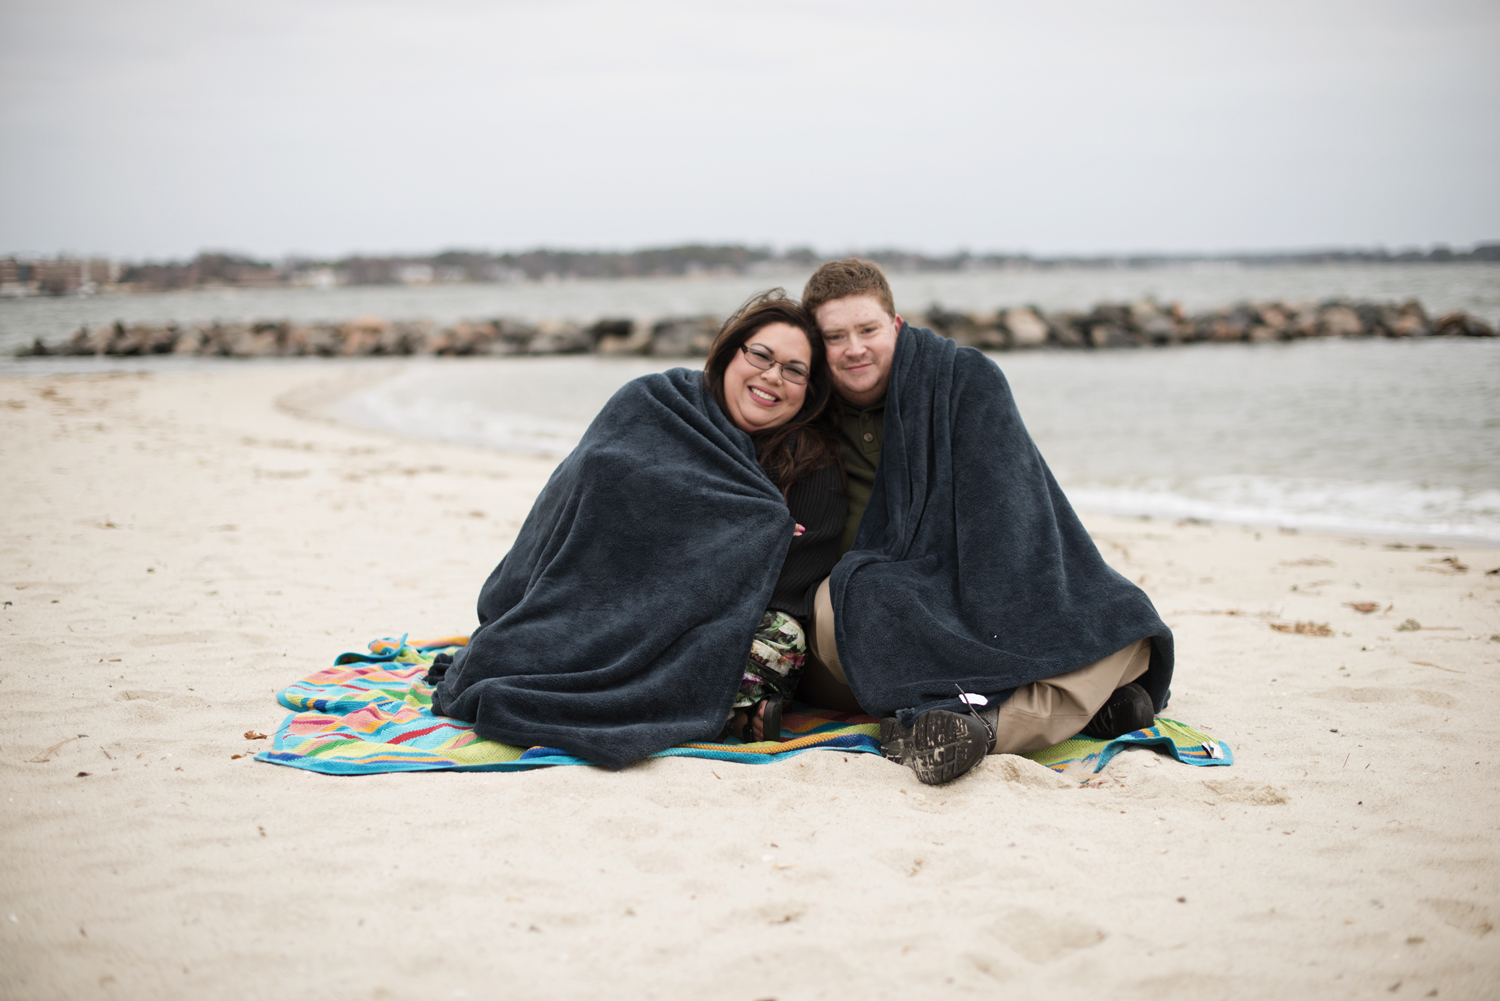 Beach engagement session posing ideas with a blanket